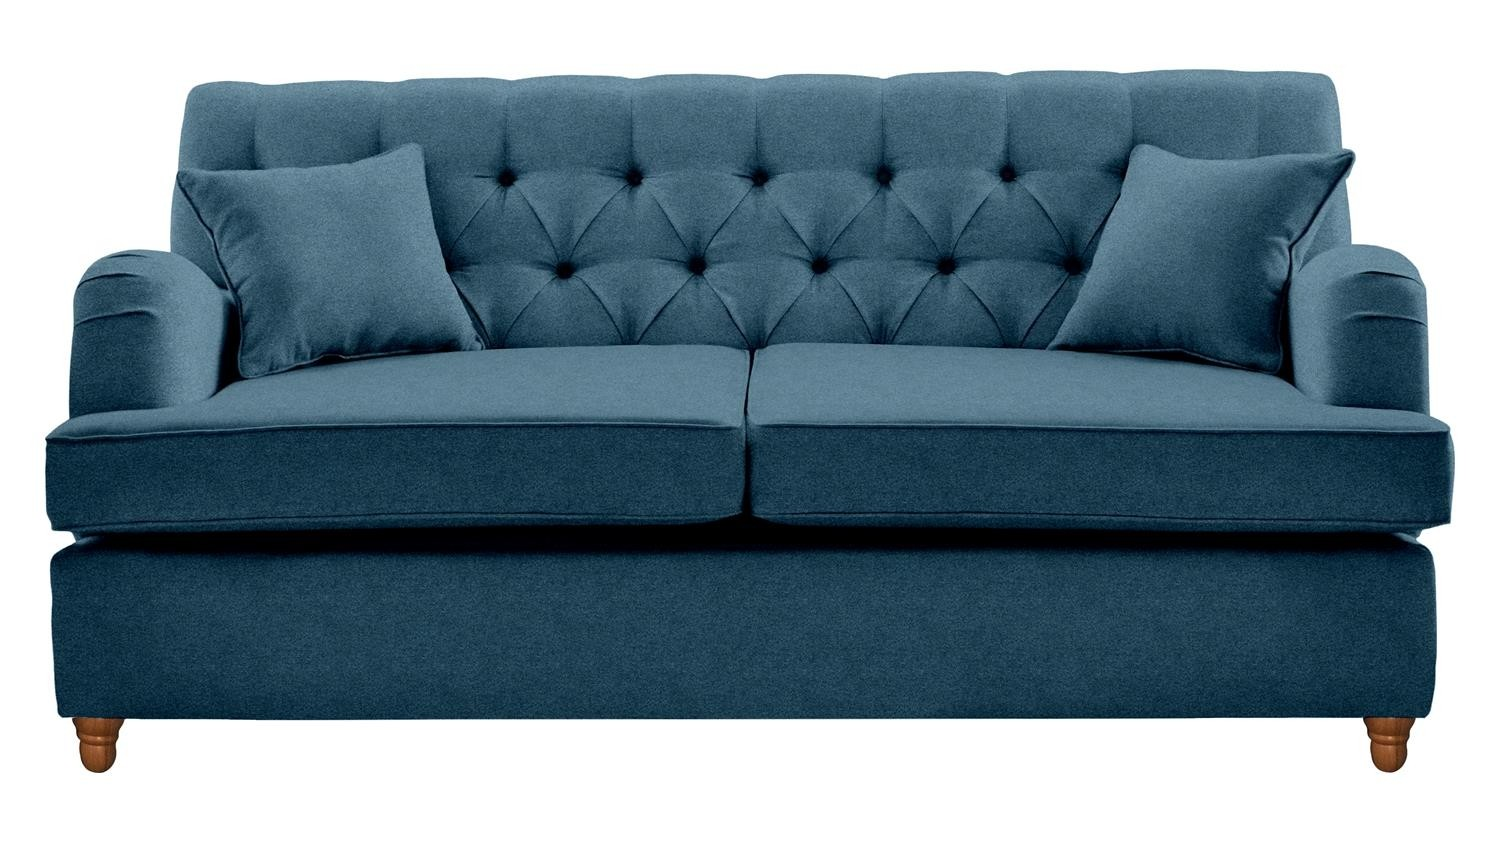 The Foxcote 3.5 Seater Sofa Bed